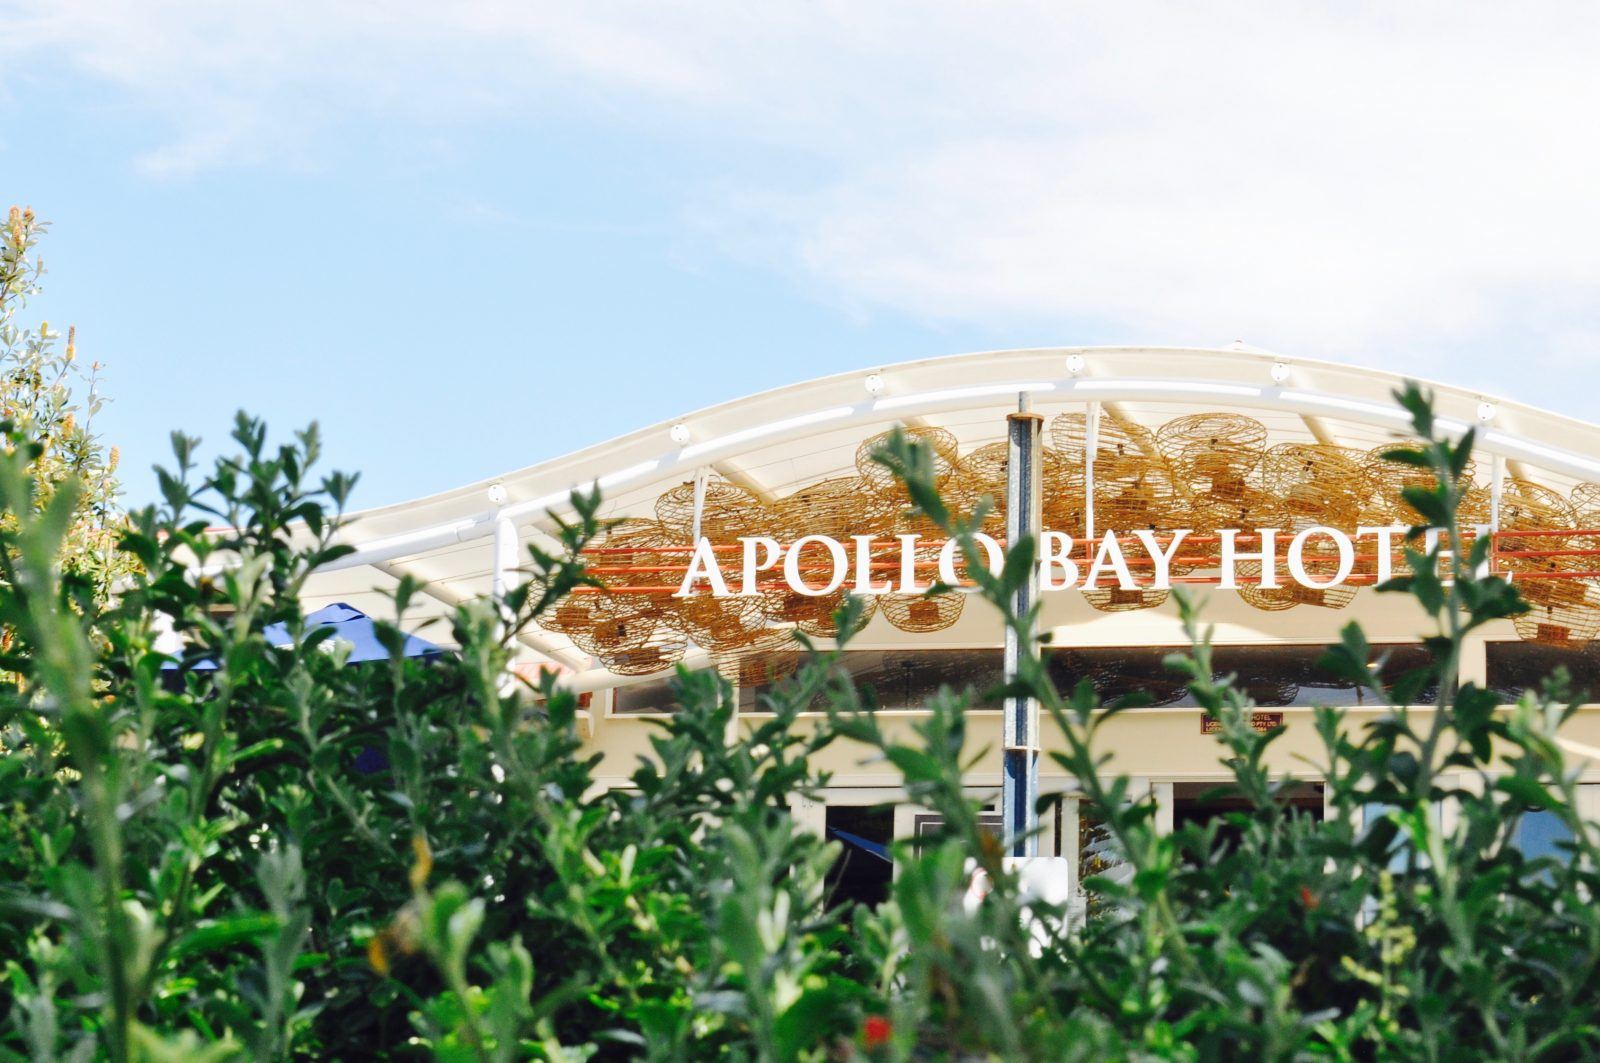 View of the Apollo Bay Hotel